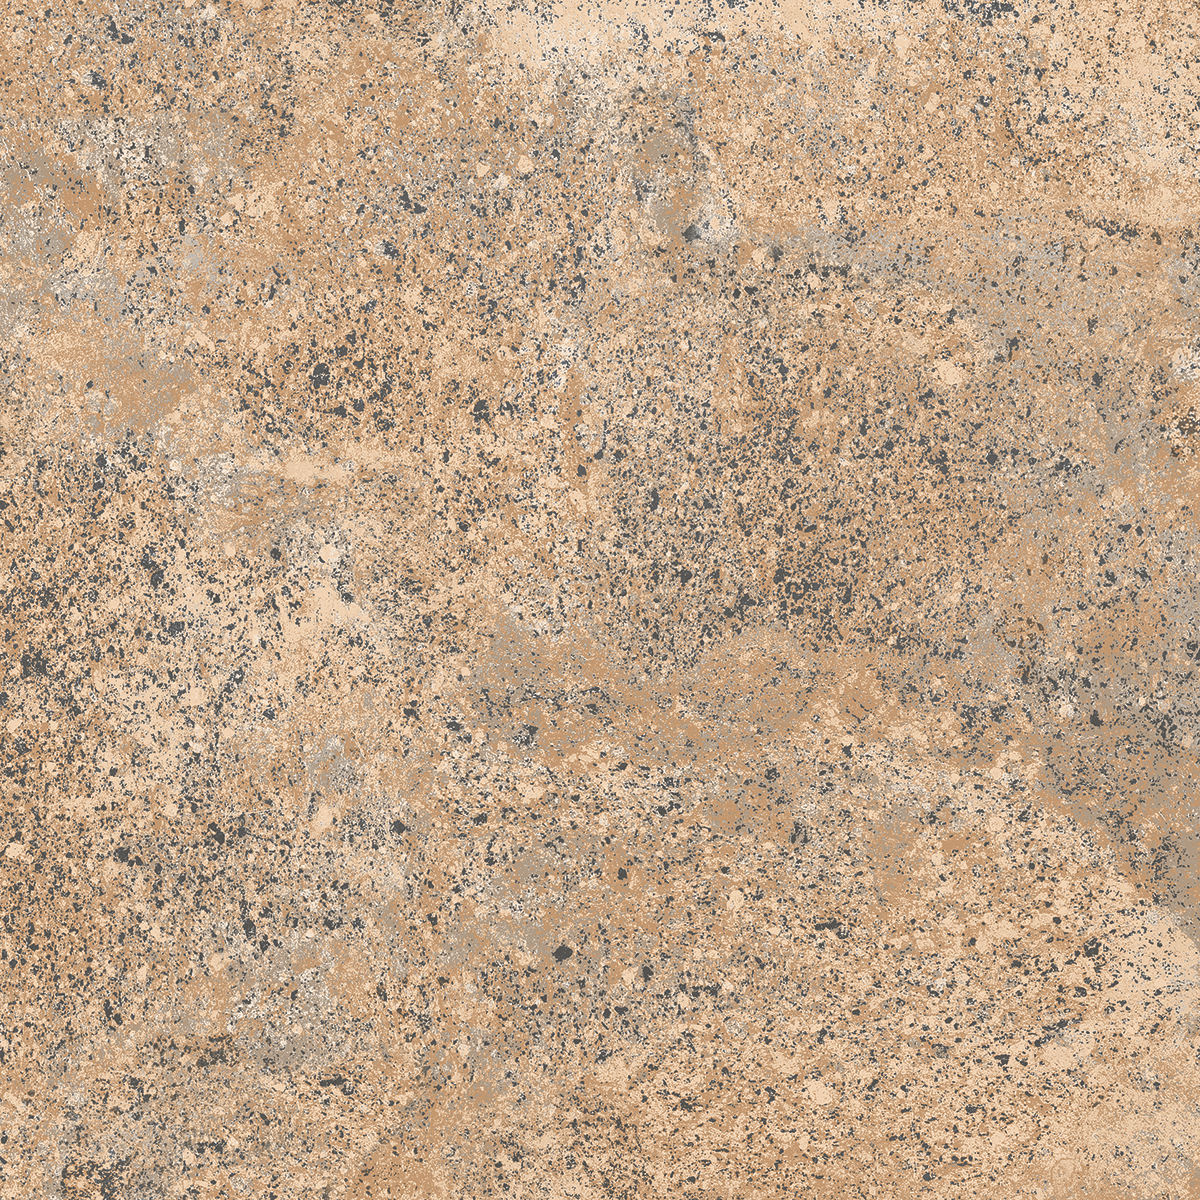 BEIGE COLOR WATERPROOF SCRATCH RESISTANCE NEW FASHION GOOD QUALITY RUSTIC TILES FOR WALL FOR BUILDING INTERIOR